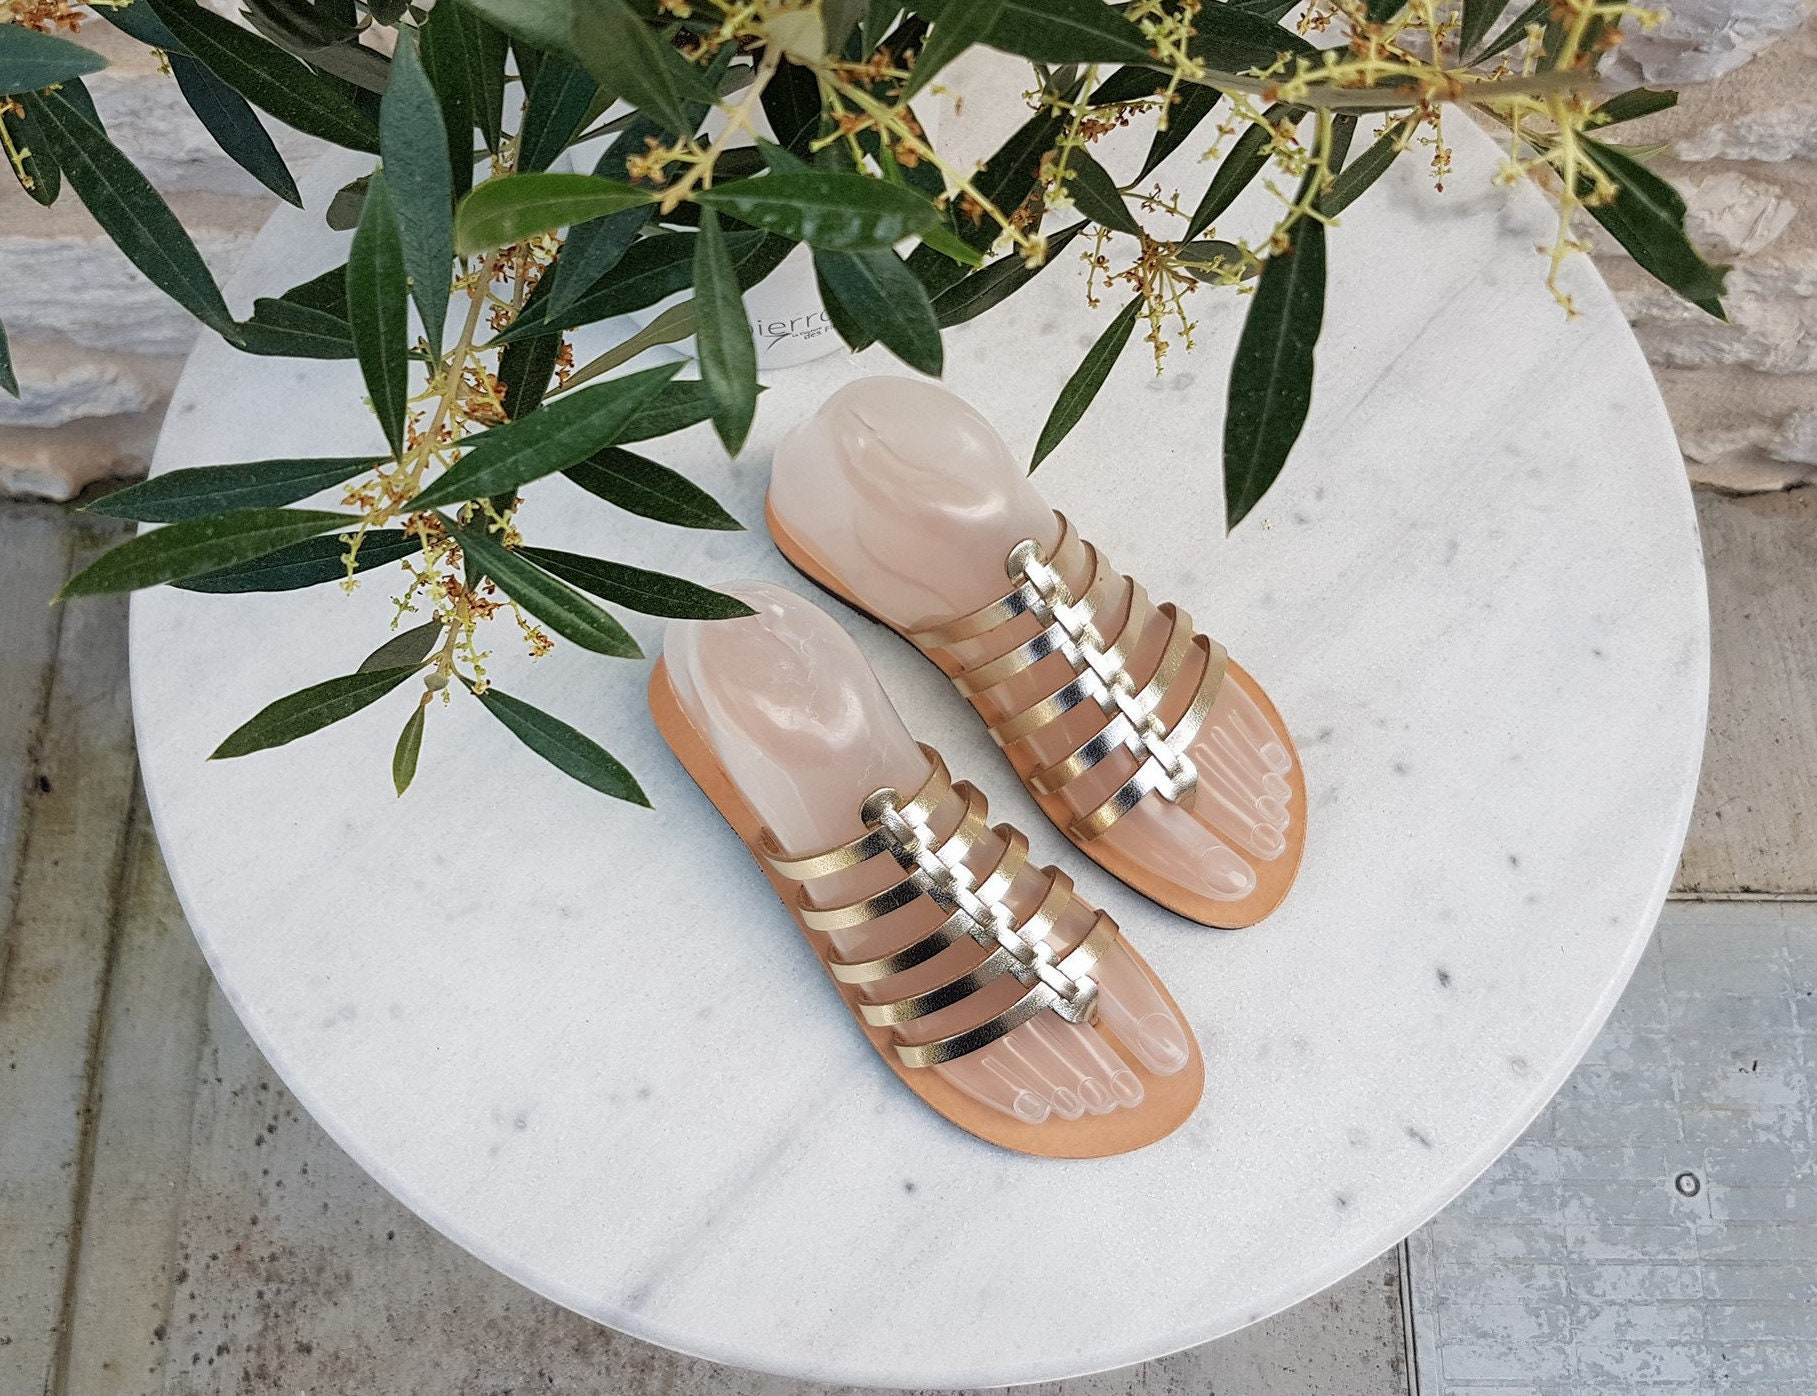 Handmade Greek Leather Sandals - Gold Sandals - Wedding Slides Sandals - Metallic Sandals - Slides Wedding - Wedding Shoes - Bridesmaids - Gift for Her db7414